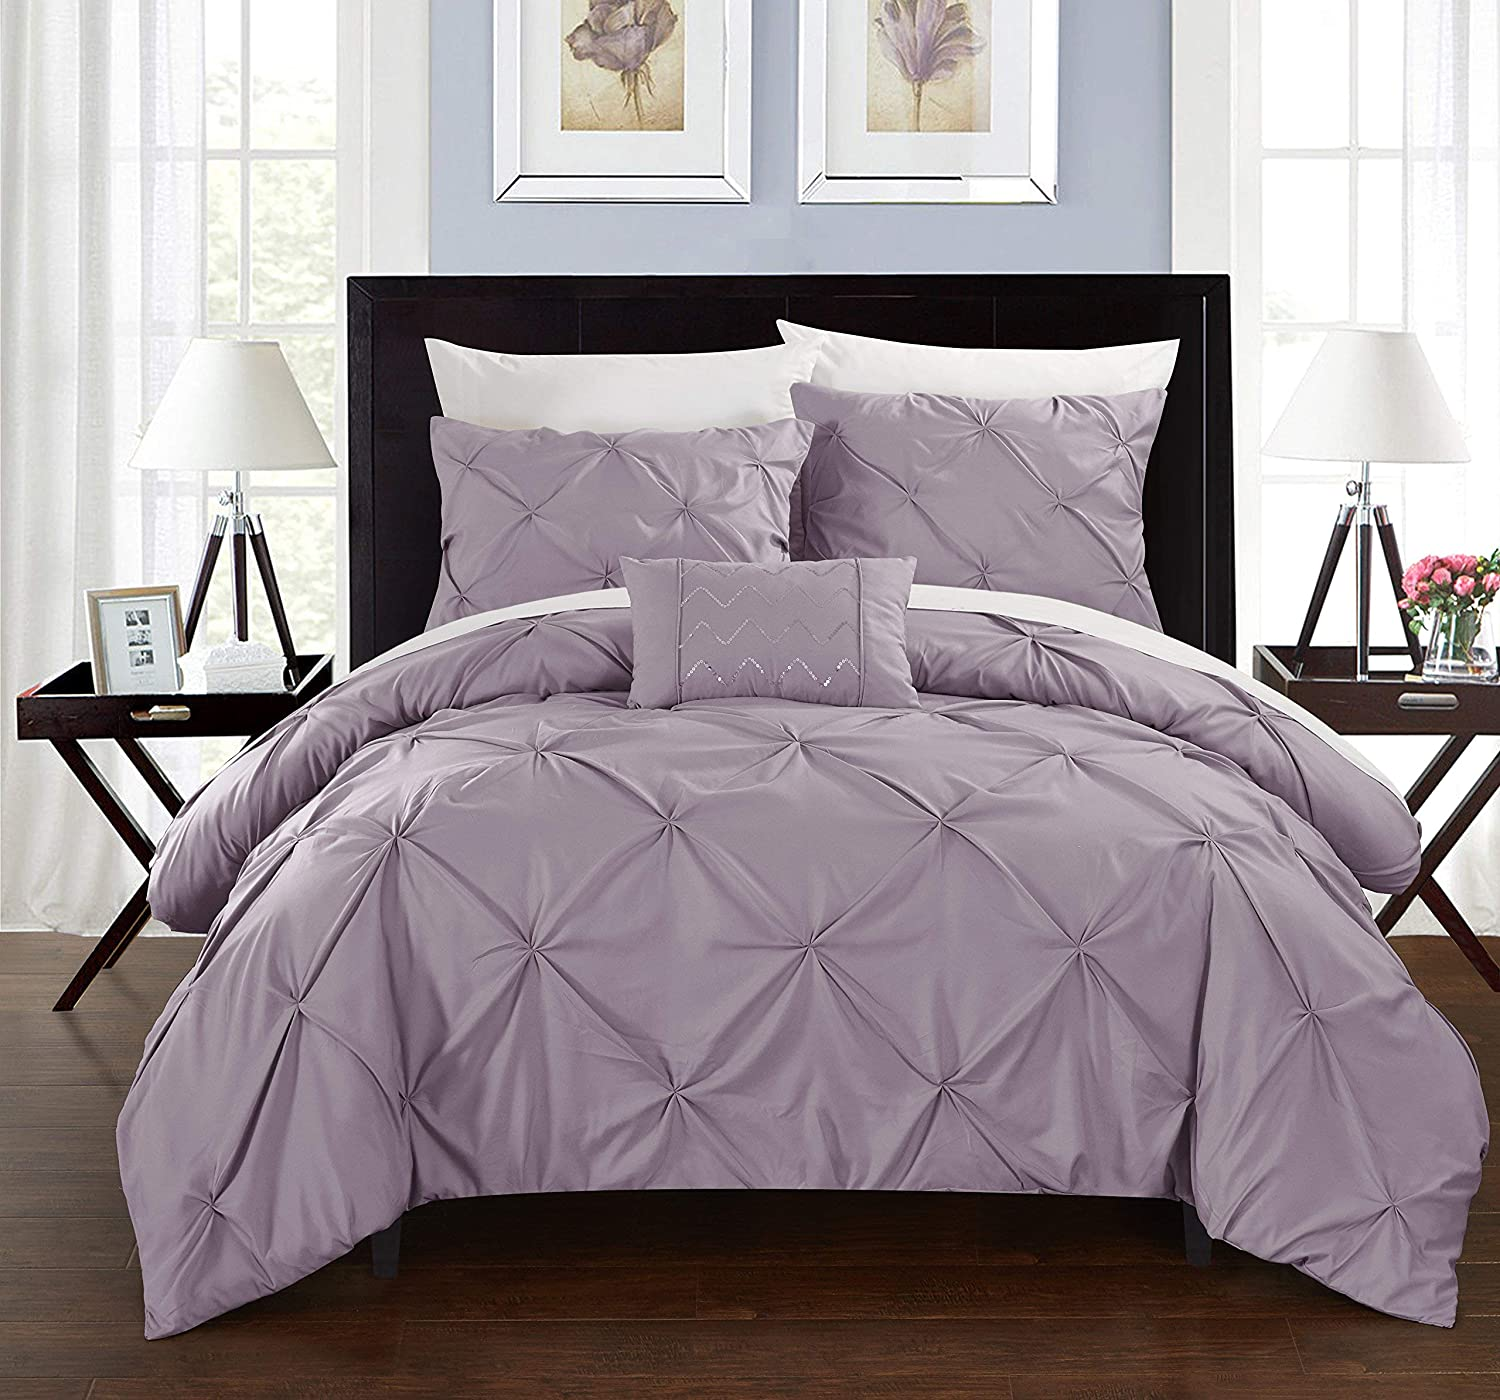 Chic Home 4 Pc Daya Pinch Pleated, Ruffled Duvet, Queen, Lavender, 4 Piece